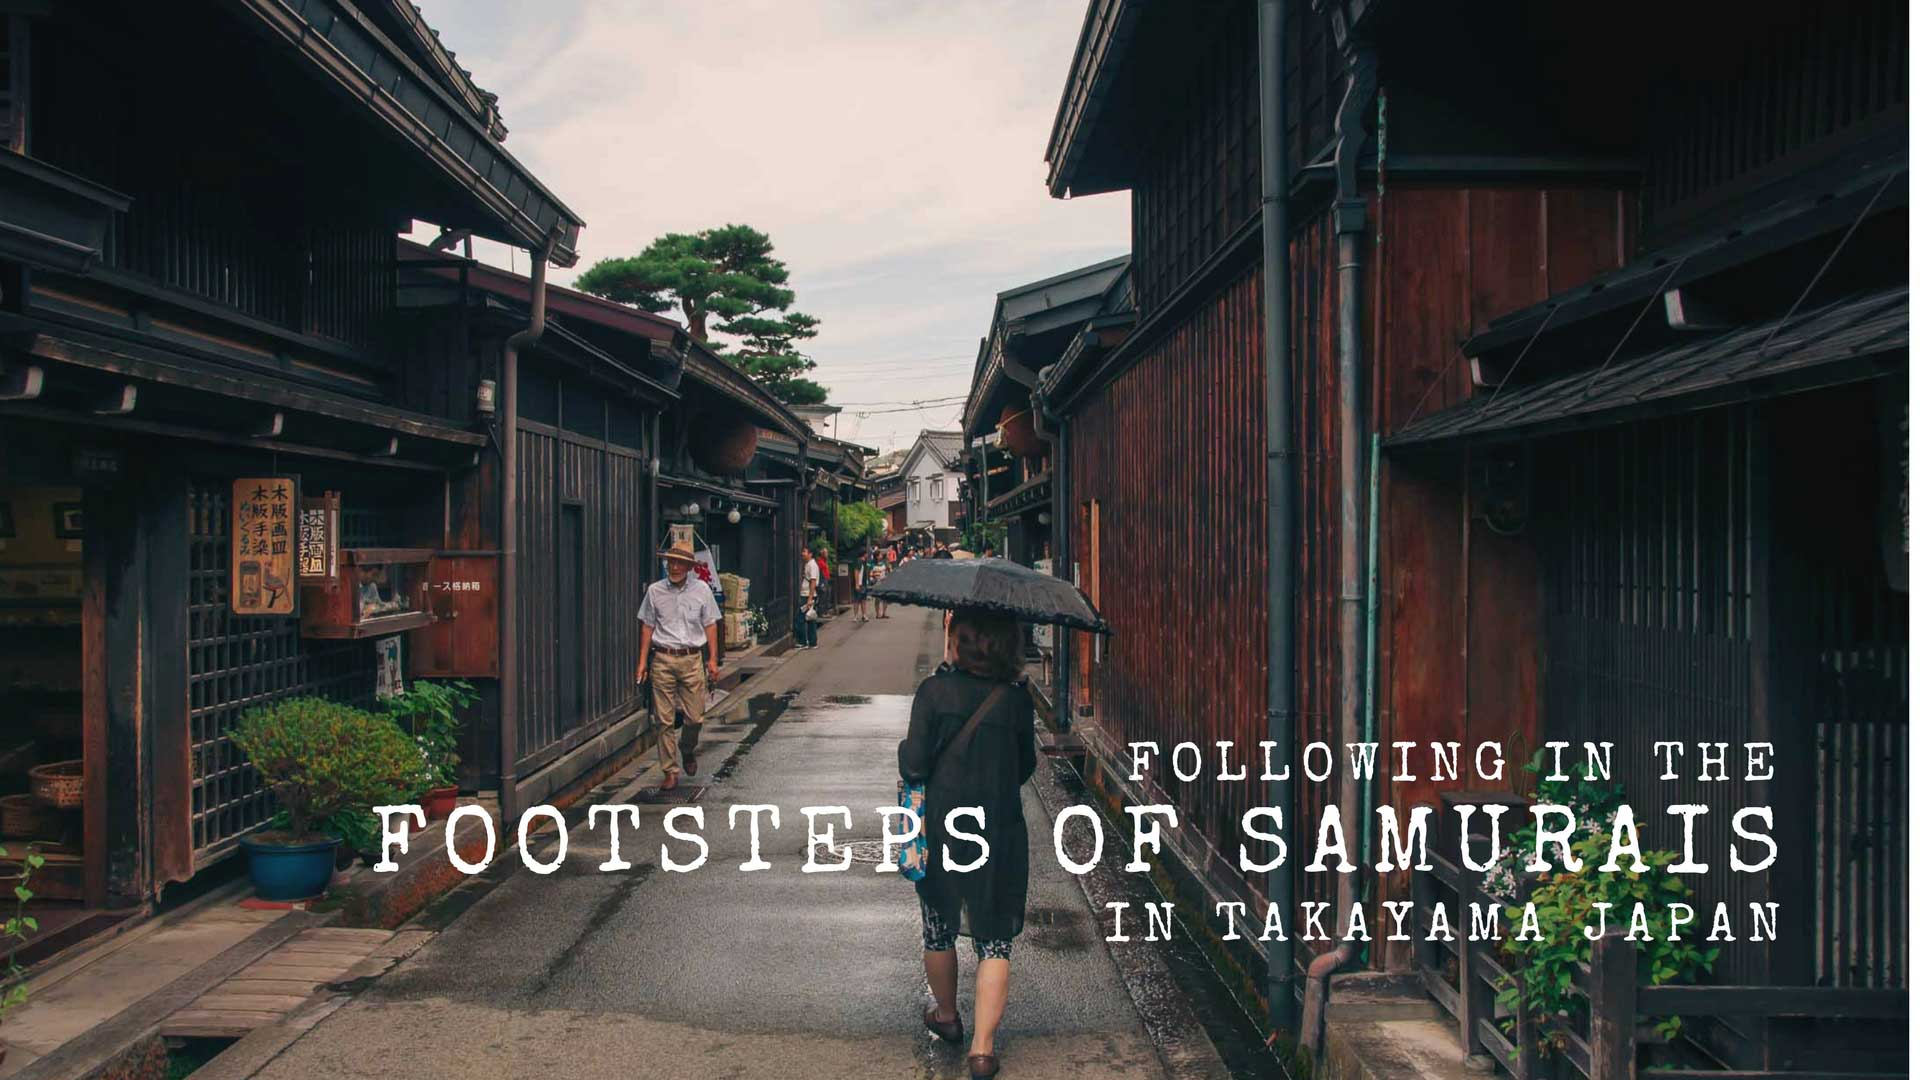 Following In The Footsteps of Samurais – Takayama, Japan